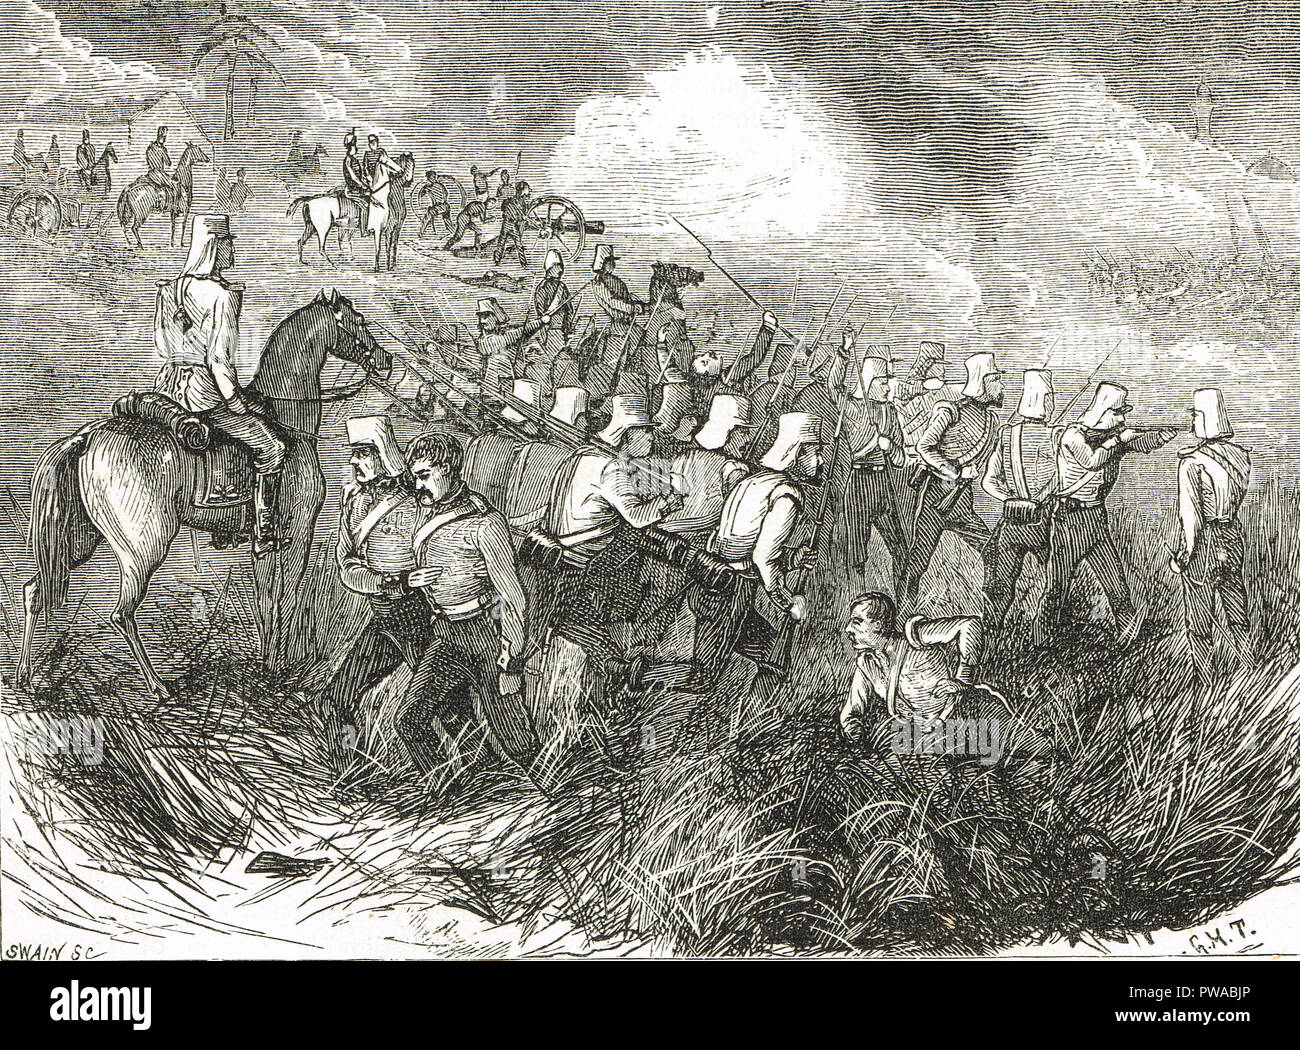 The Battle of Ferozeshah, fought on 21 and 22 December 1845, between the  British and the Sikhs, Ferozeshah in Punjab, India